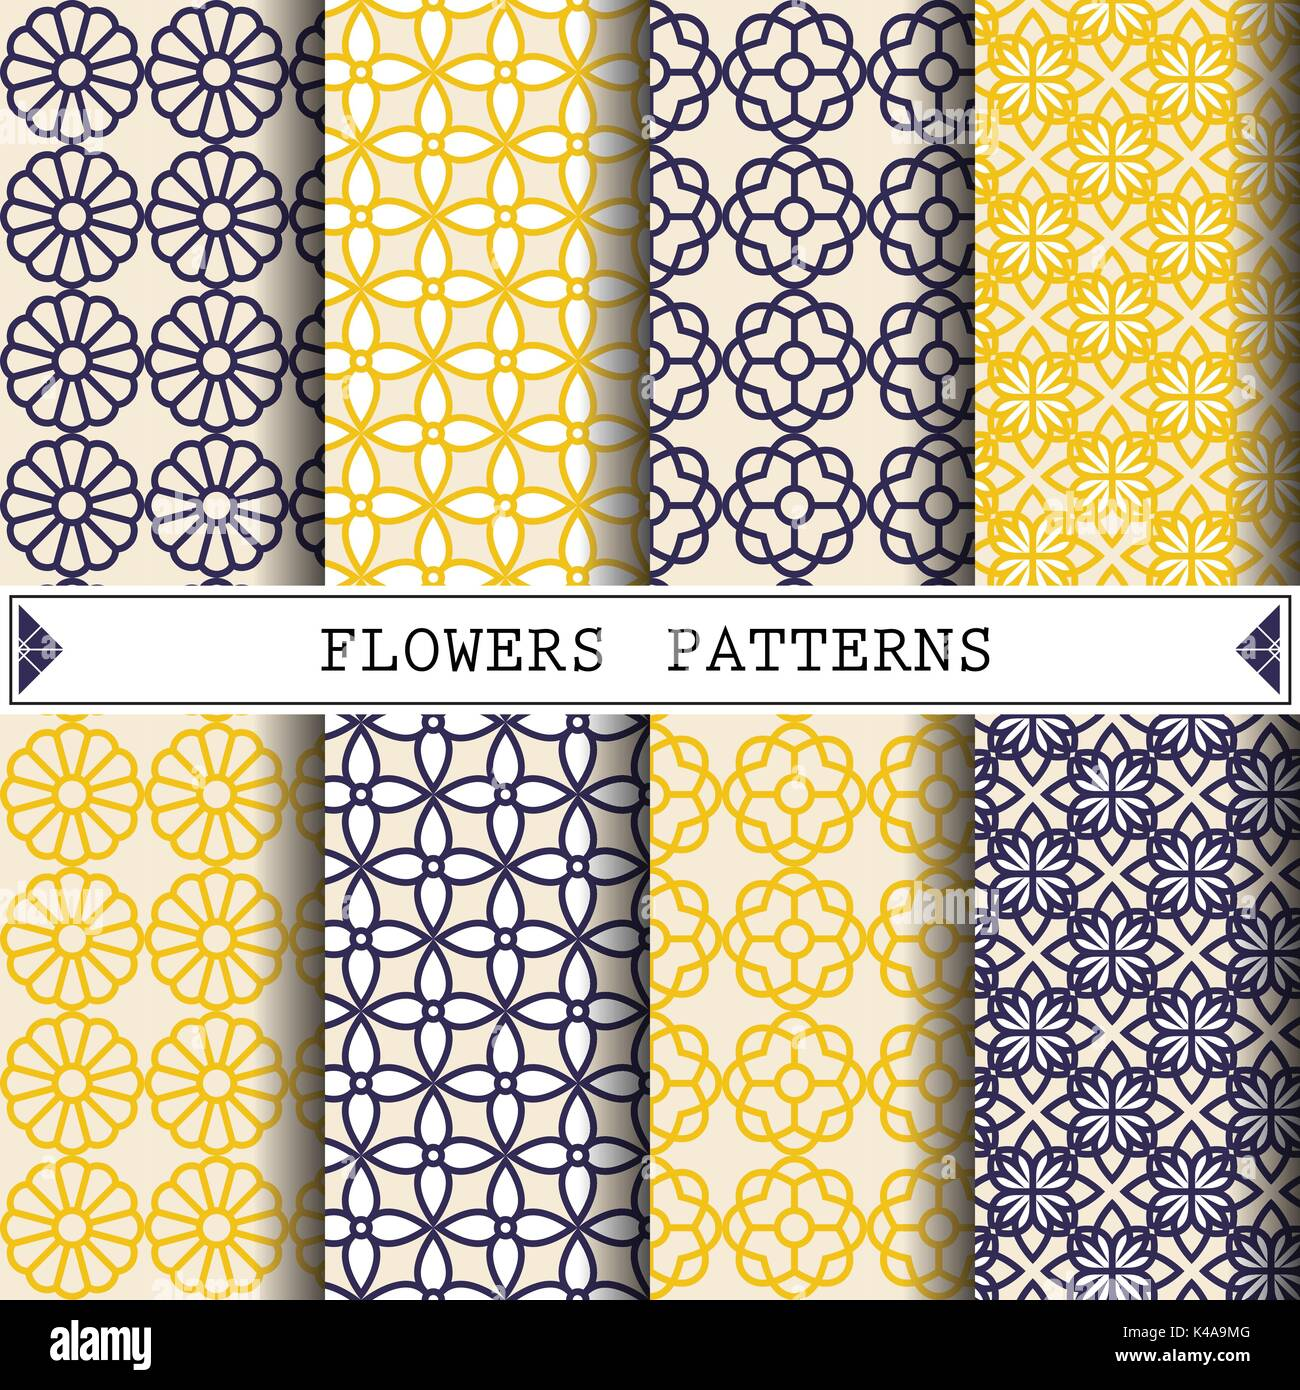 flower vector pattern for decorating web page background and surface textures - Stock Vector